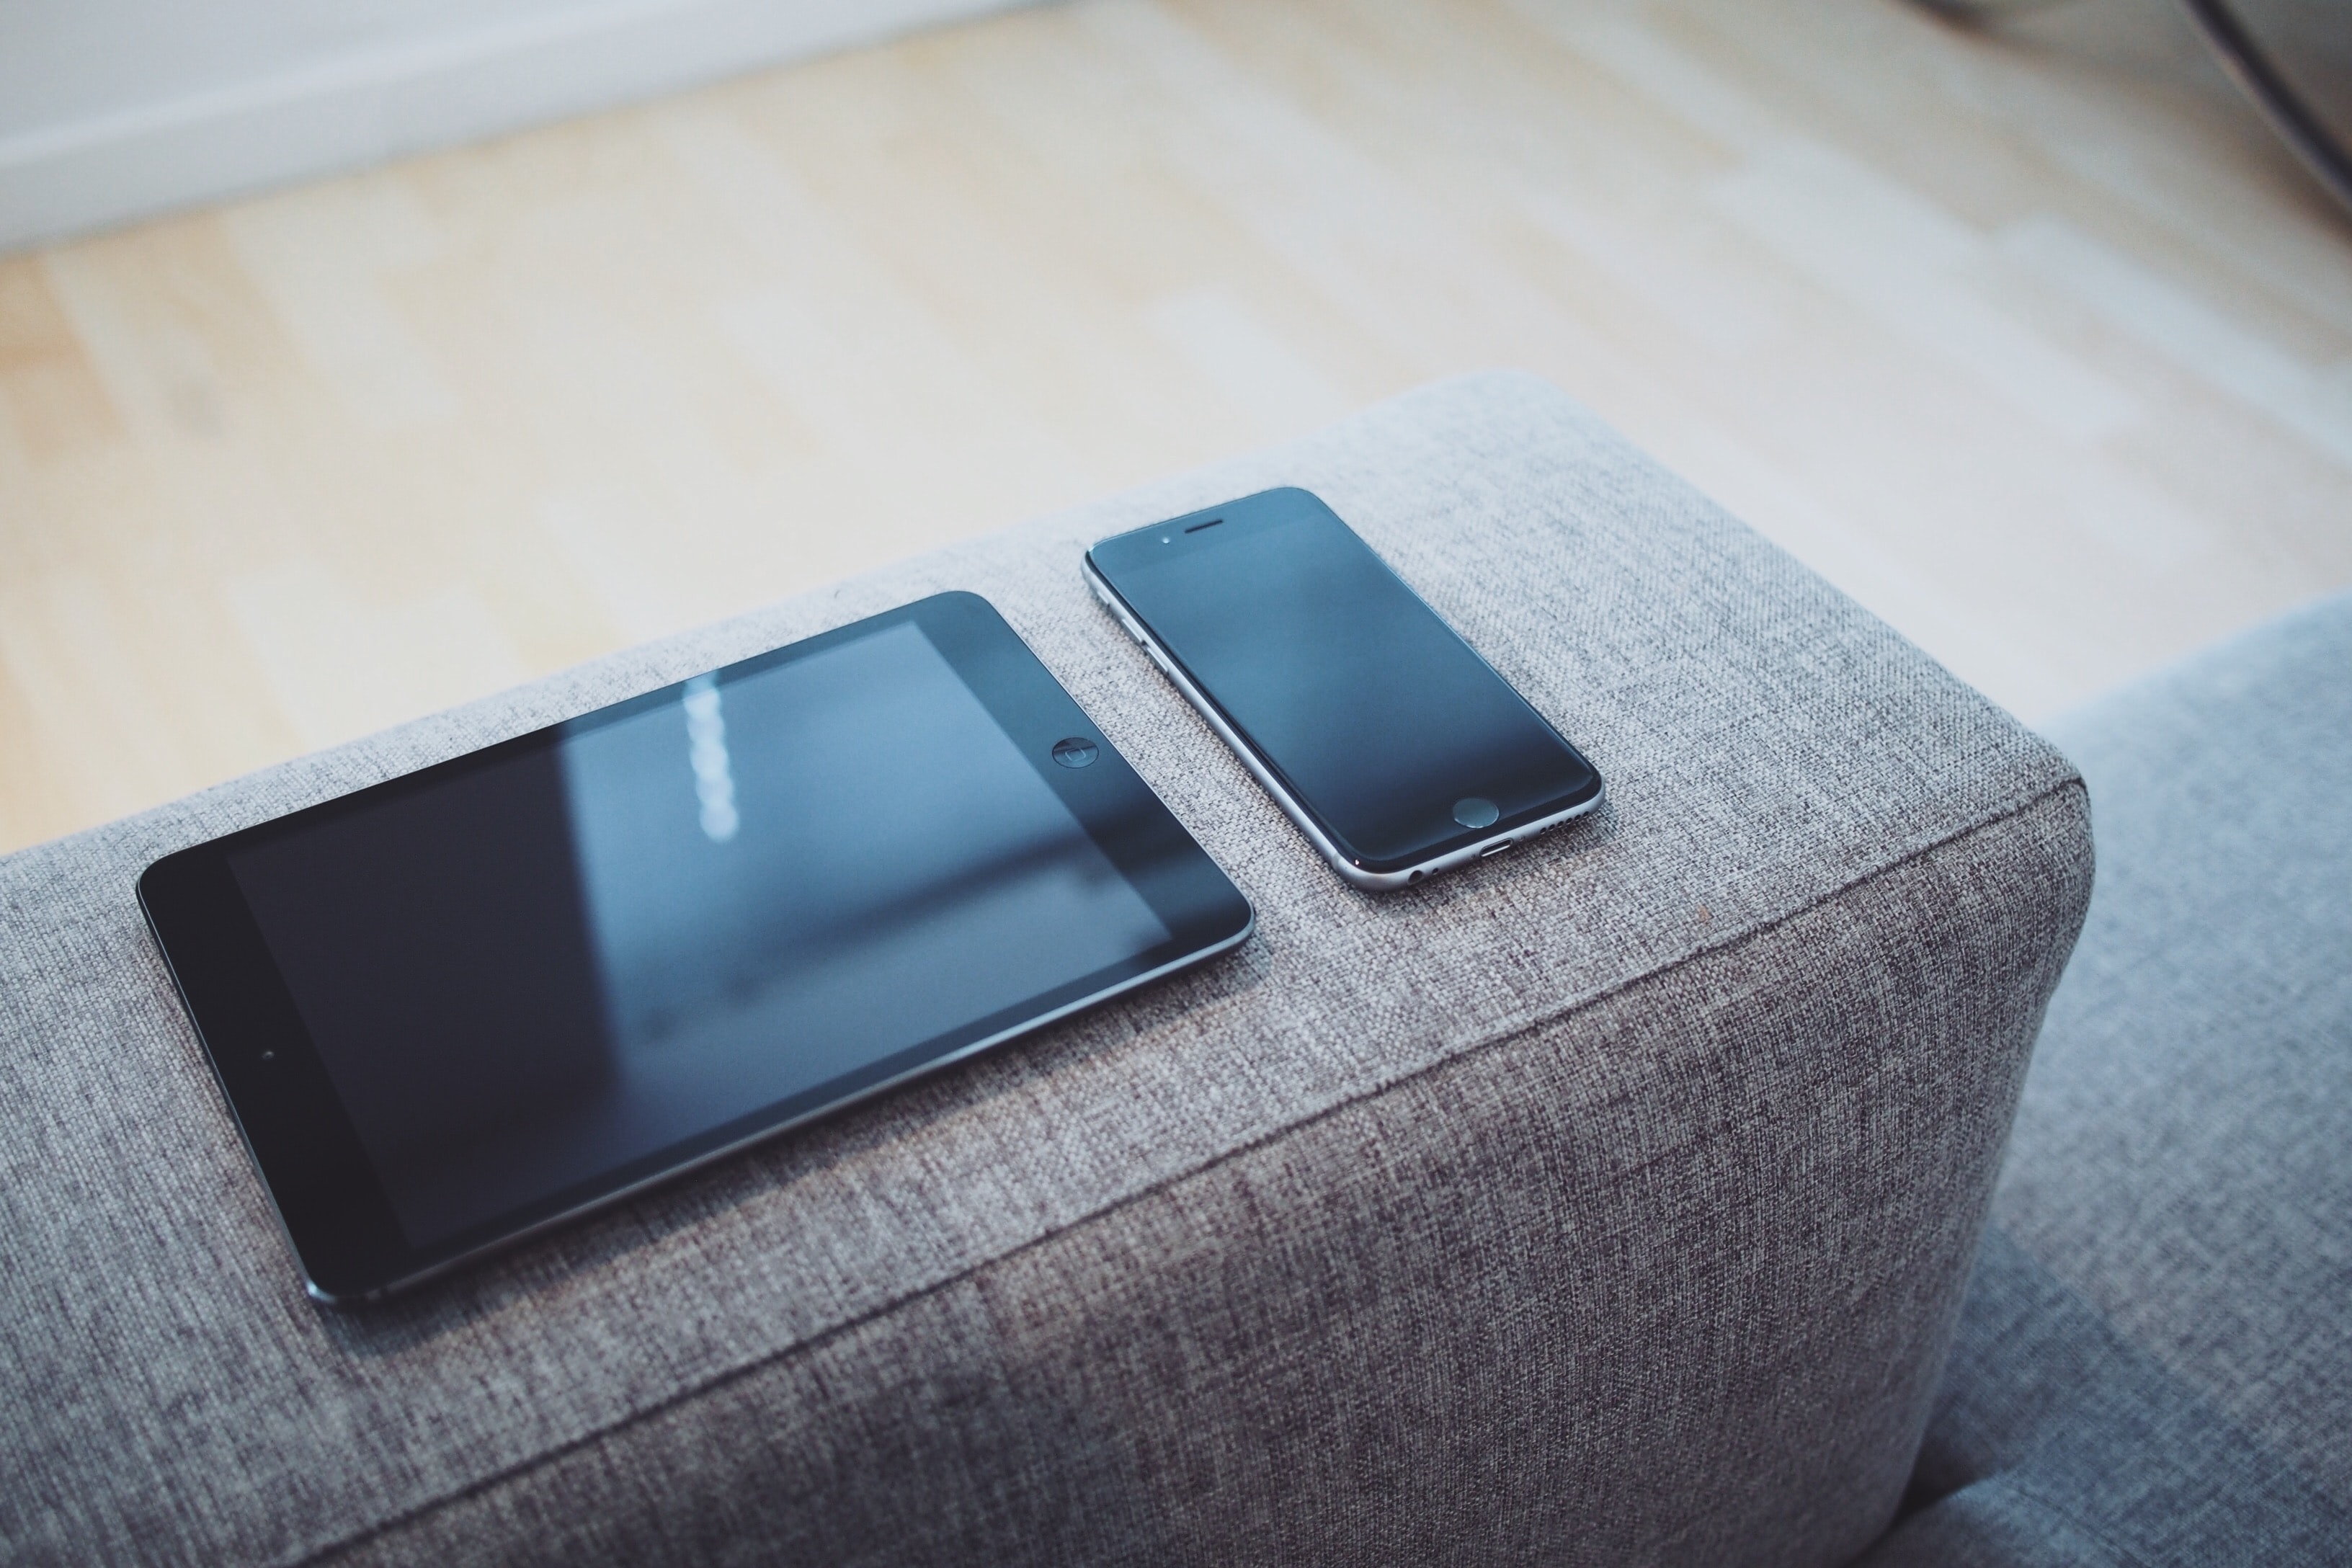 A black iPad mini next to a black iPhone laid out on a on a gray sofa armrest